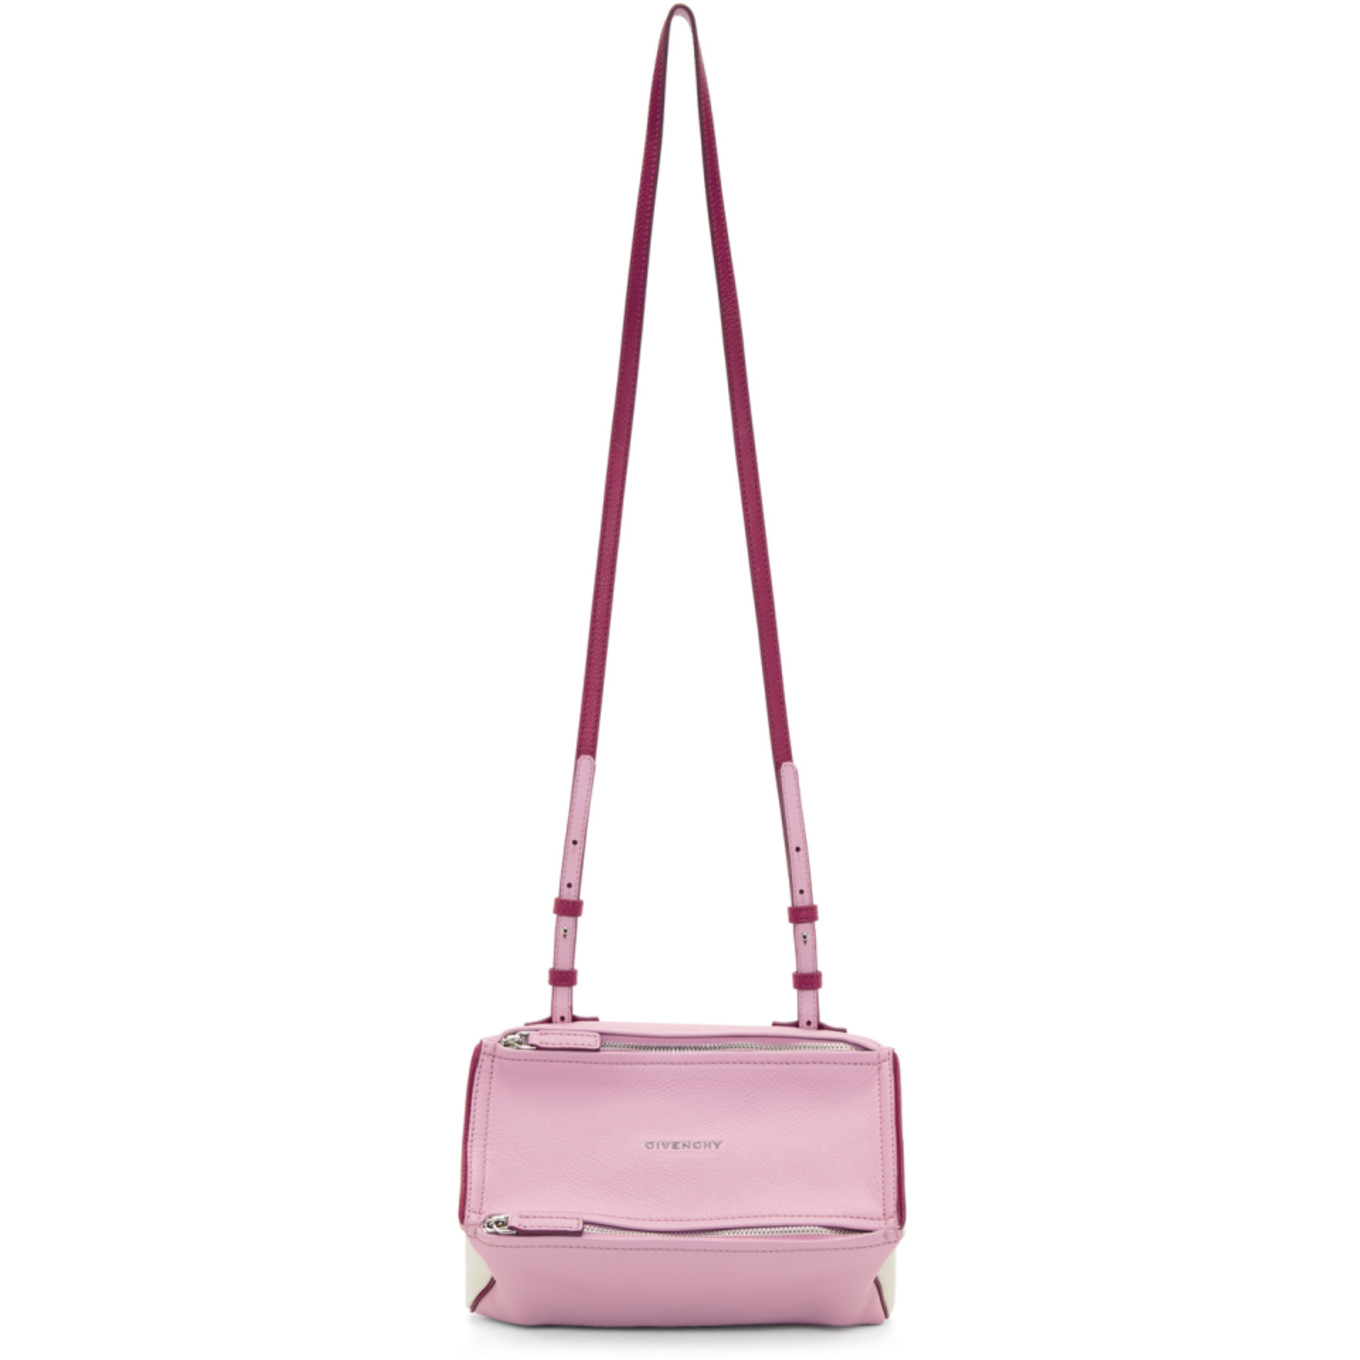 Pink & Off White Mini Pandora Bag by Givenchy